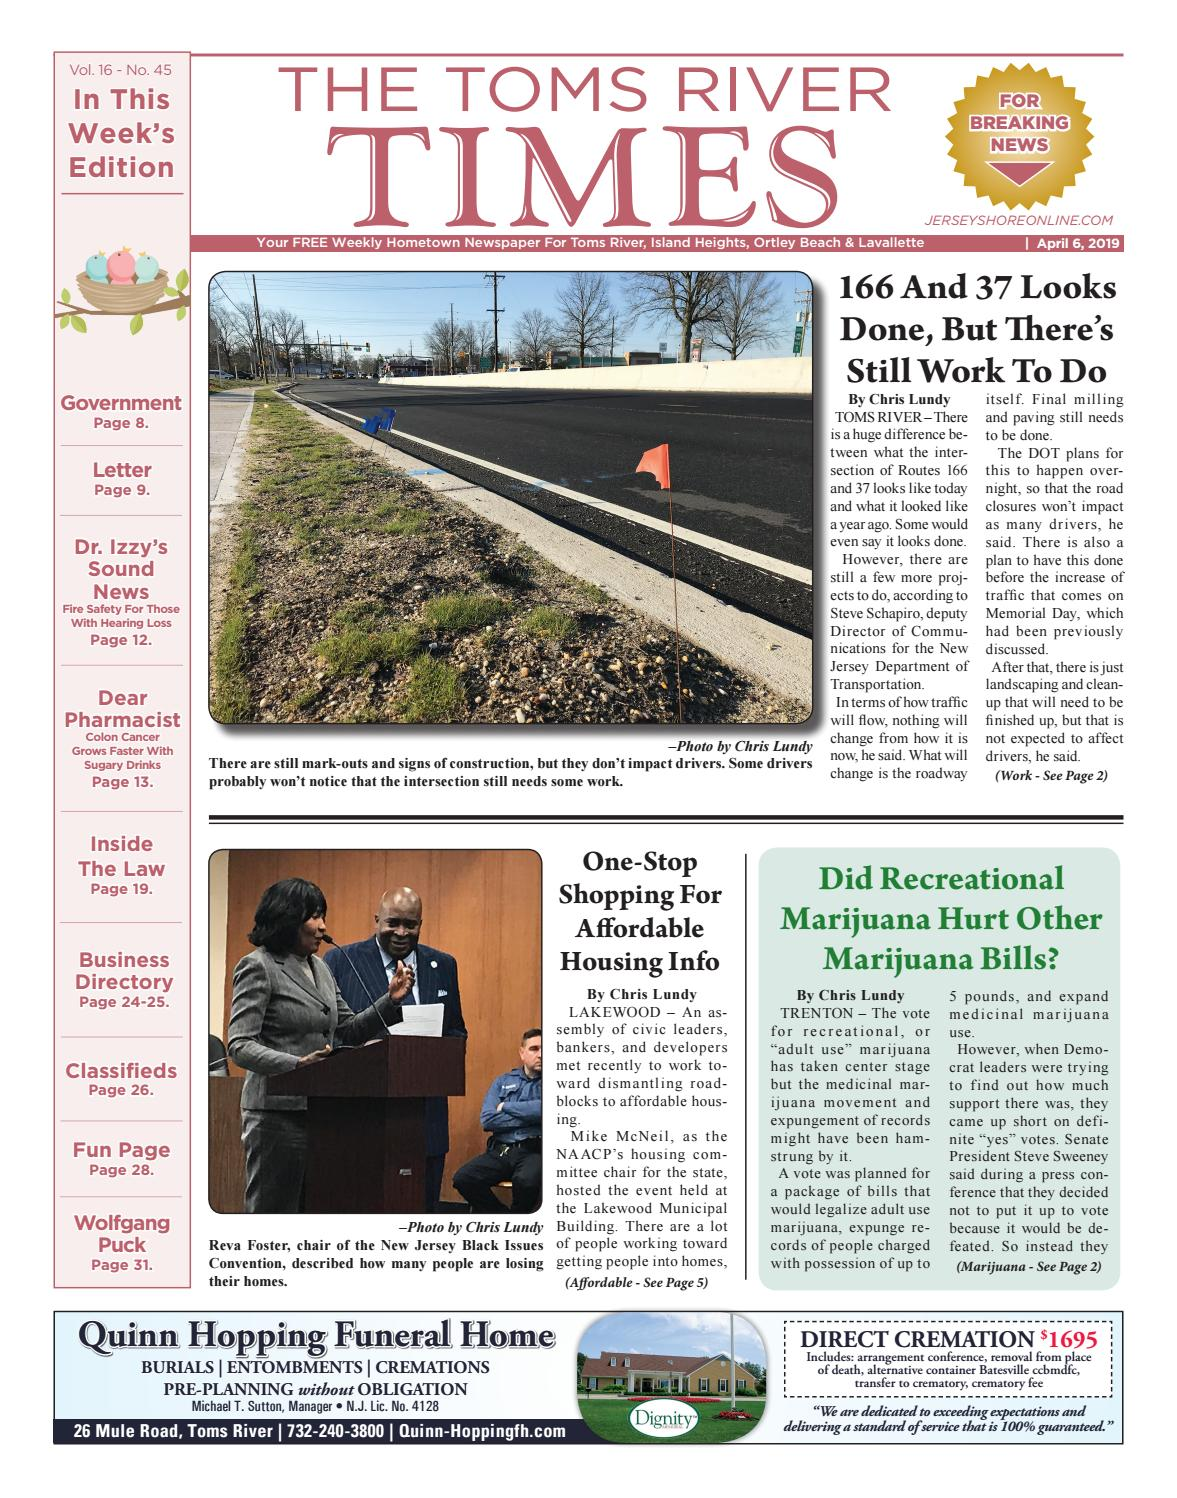 2019-04-06 - The Toms River Times by Micromedia Publications